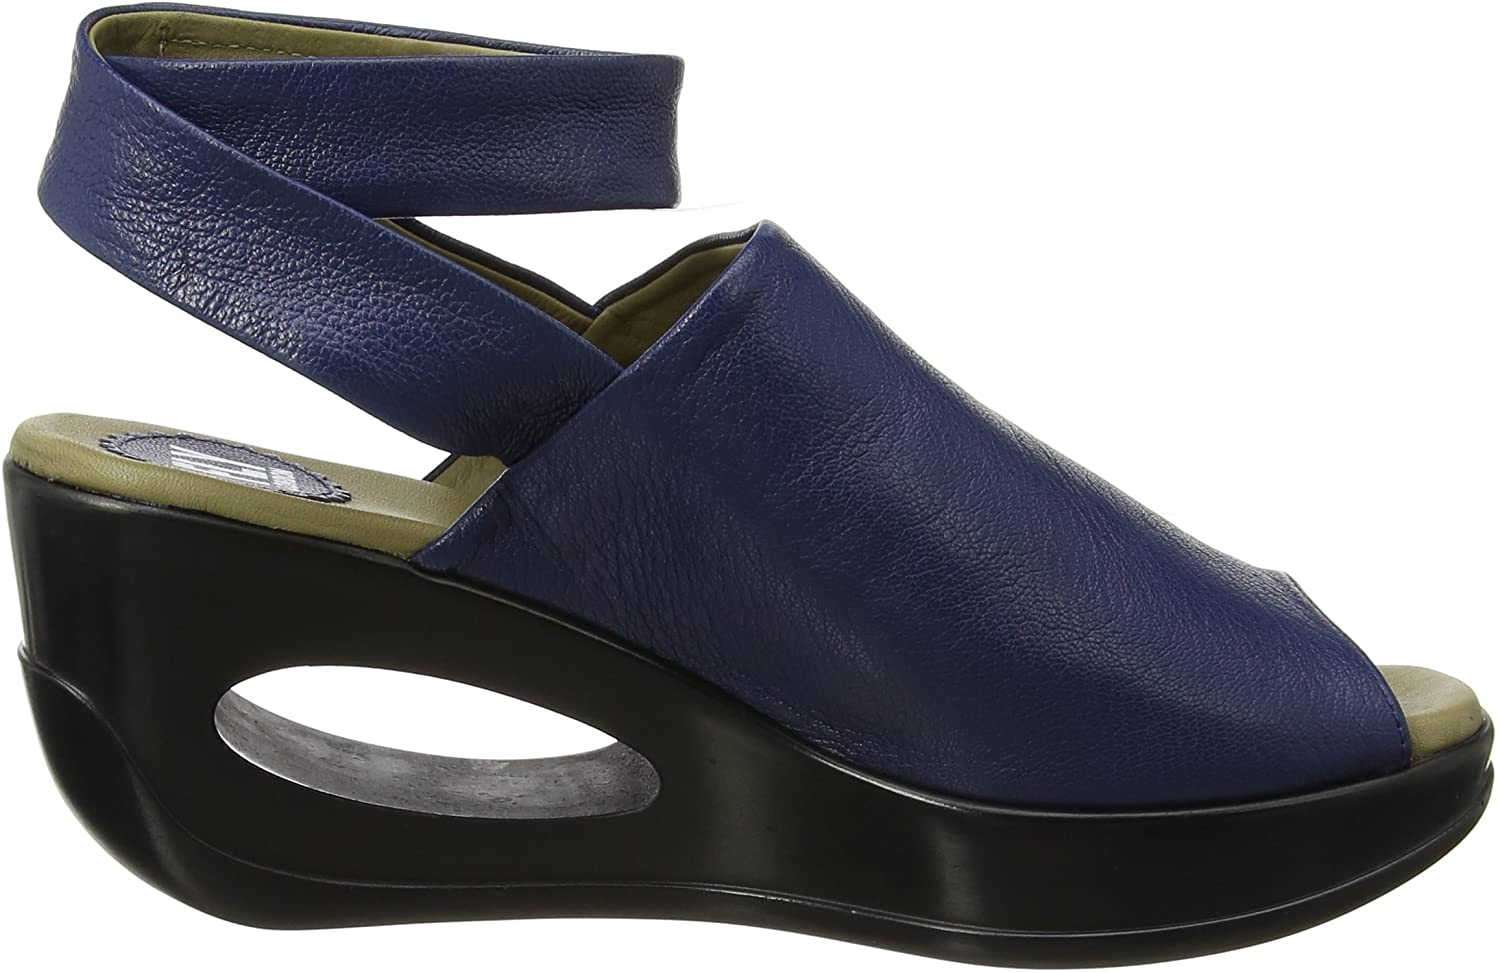 FLY London Hini892, Sandales Bride Cheville wedge Femme Bleu Blue 006